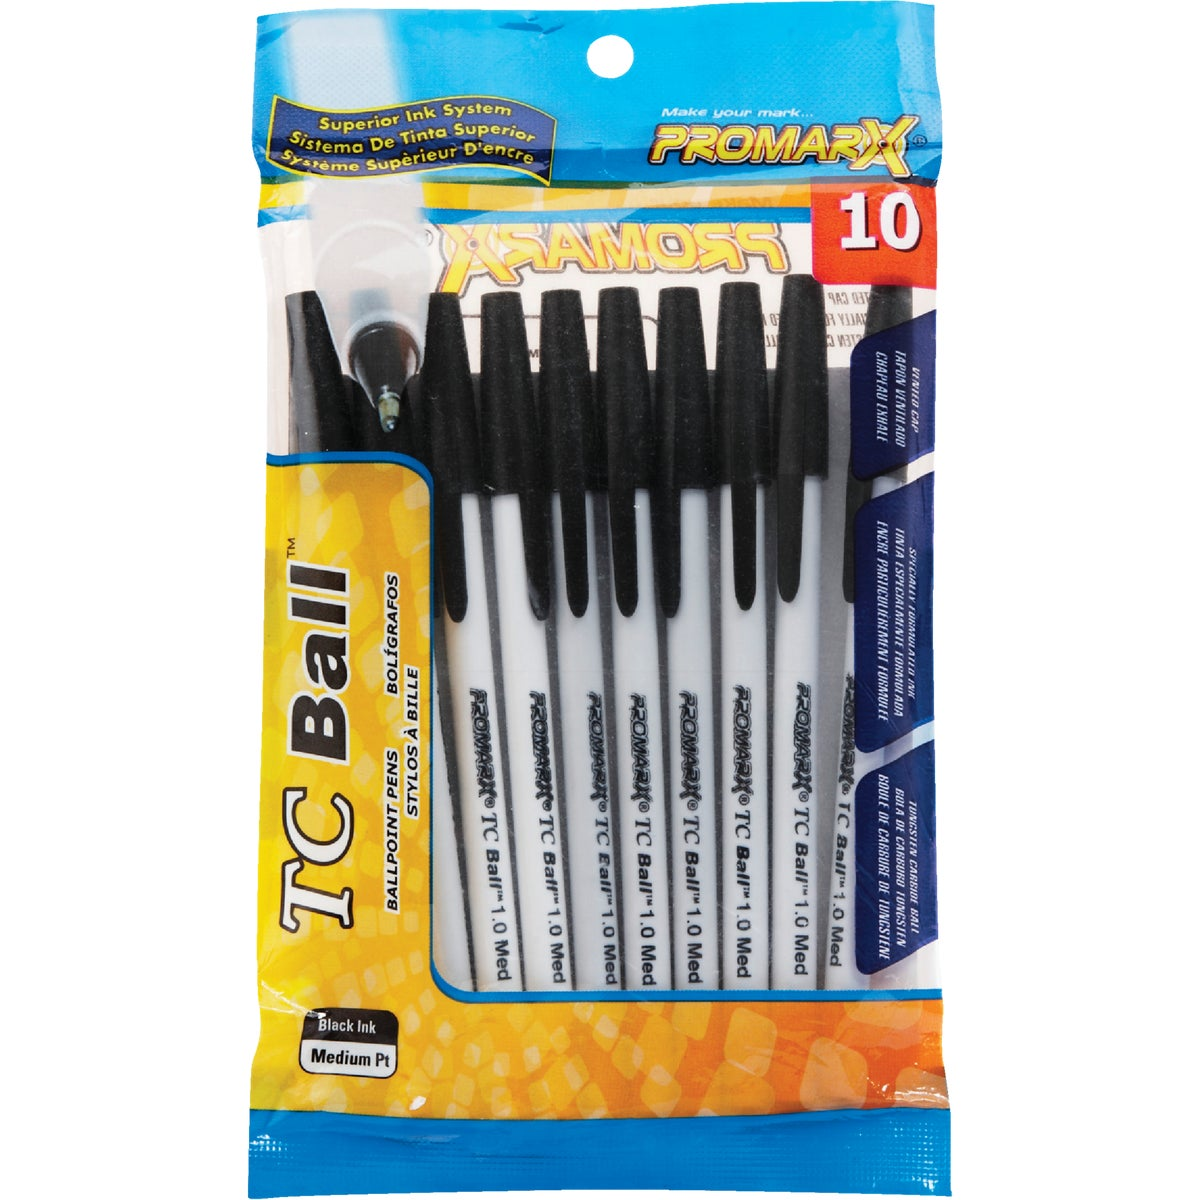 TC BALL STICK BLACK PENS - BP48 by Kittrich Corp